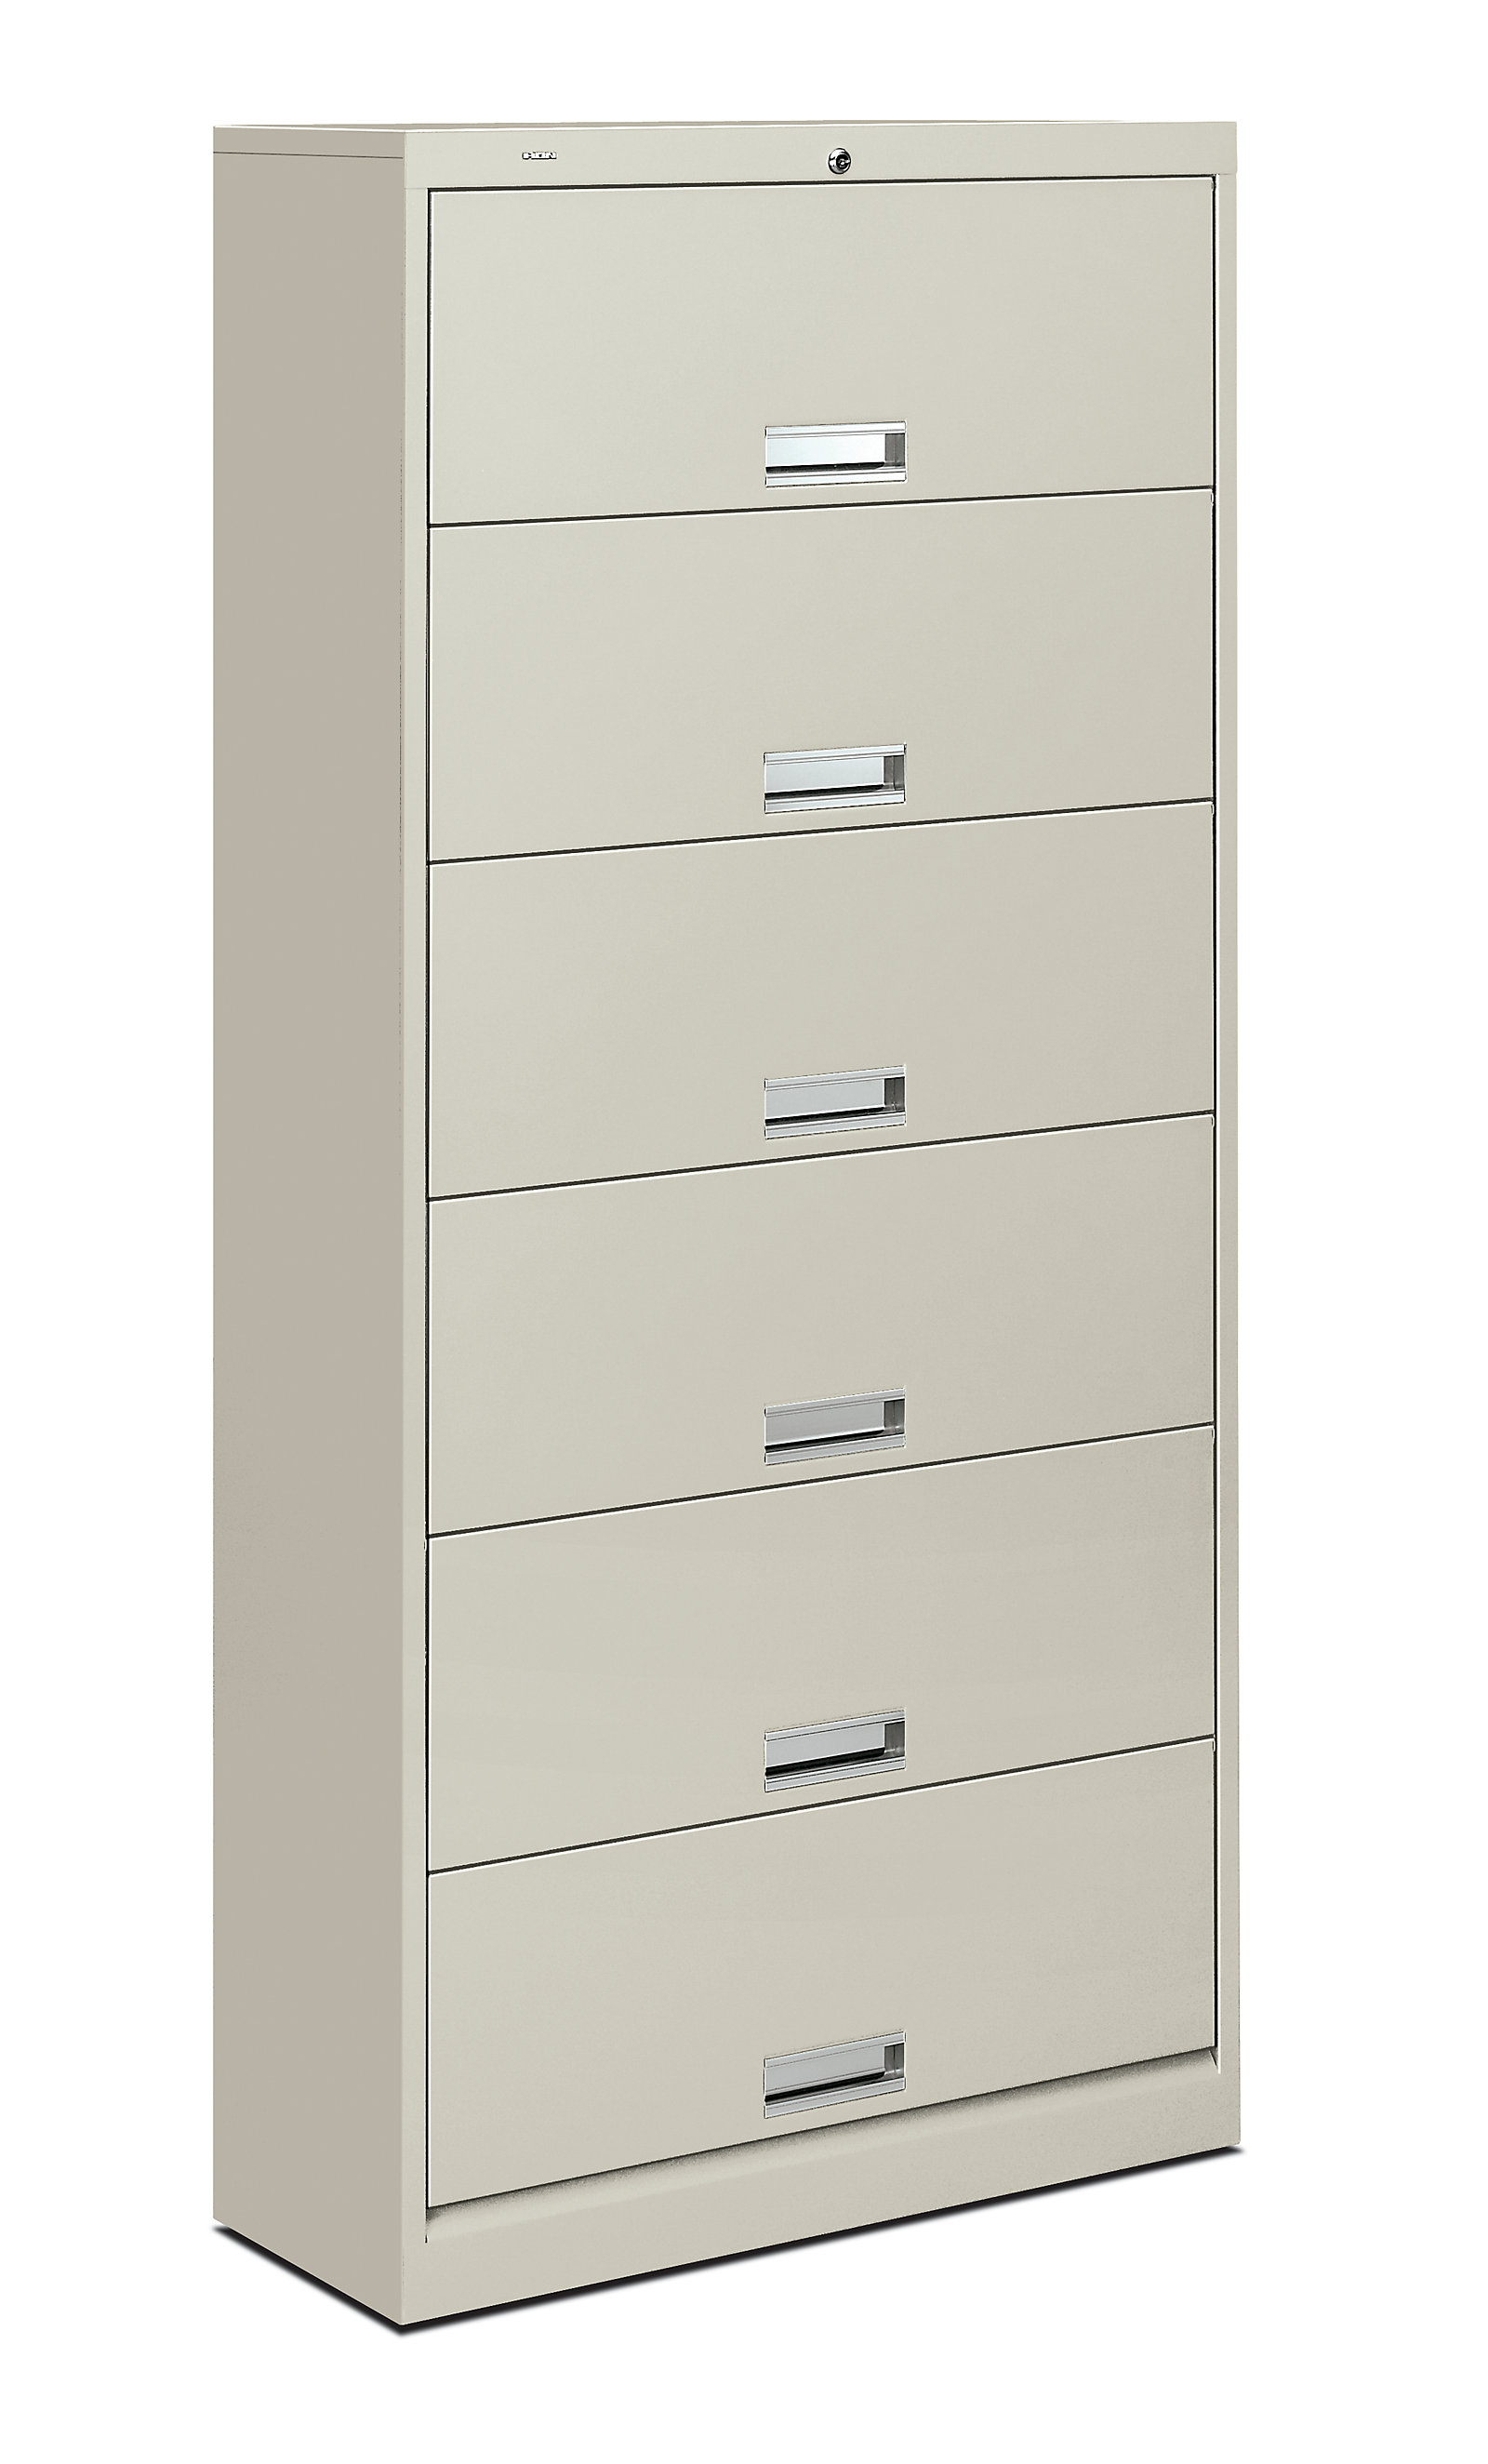 cabinets wood lateral used hon file draer dividers cabinet rails buy locking filing